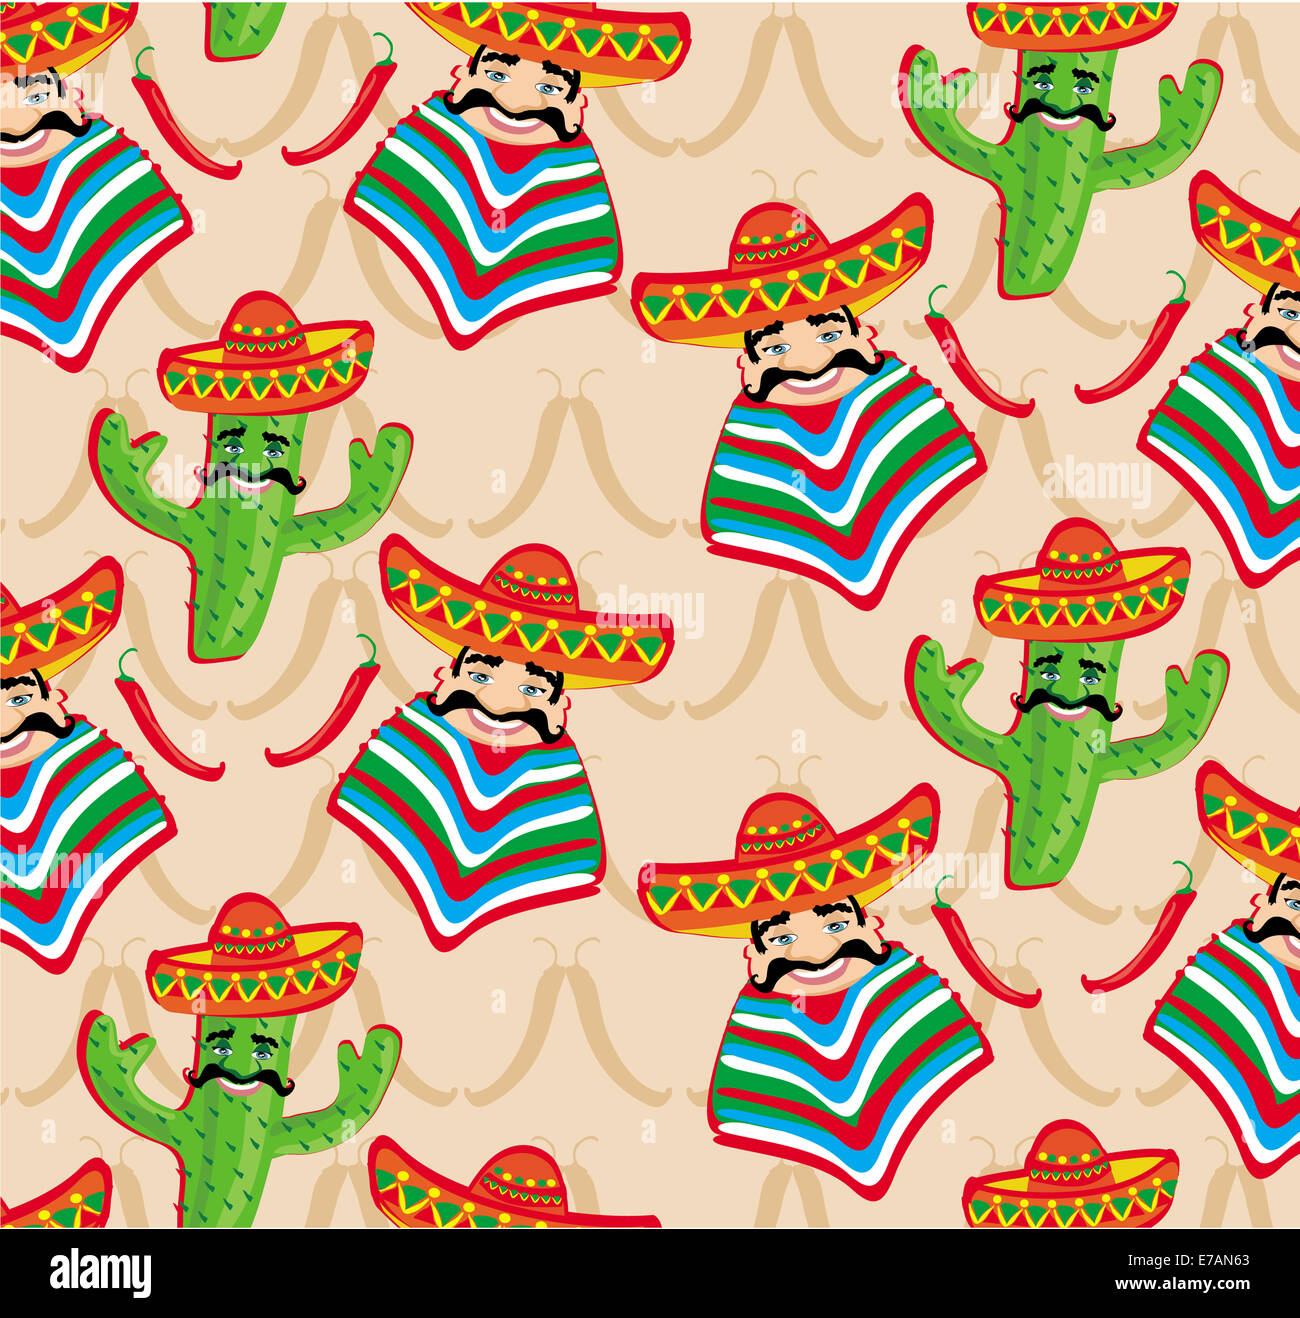 Mexican pattern with cactus 61e85e403fc